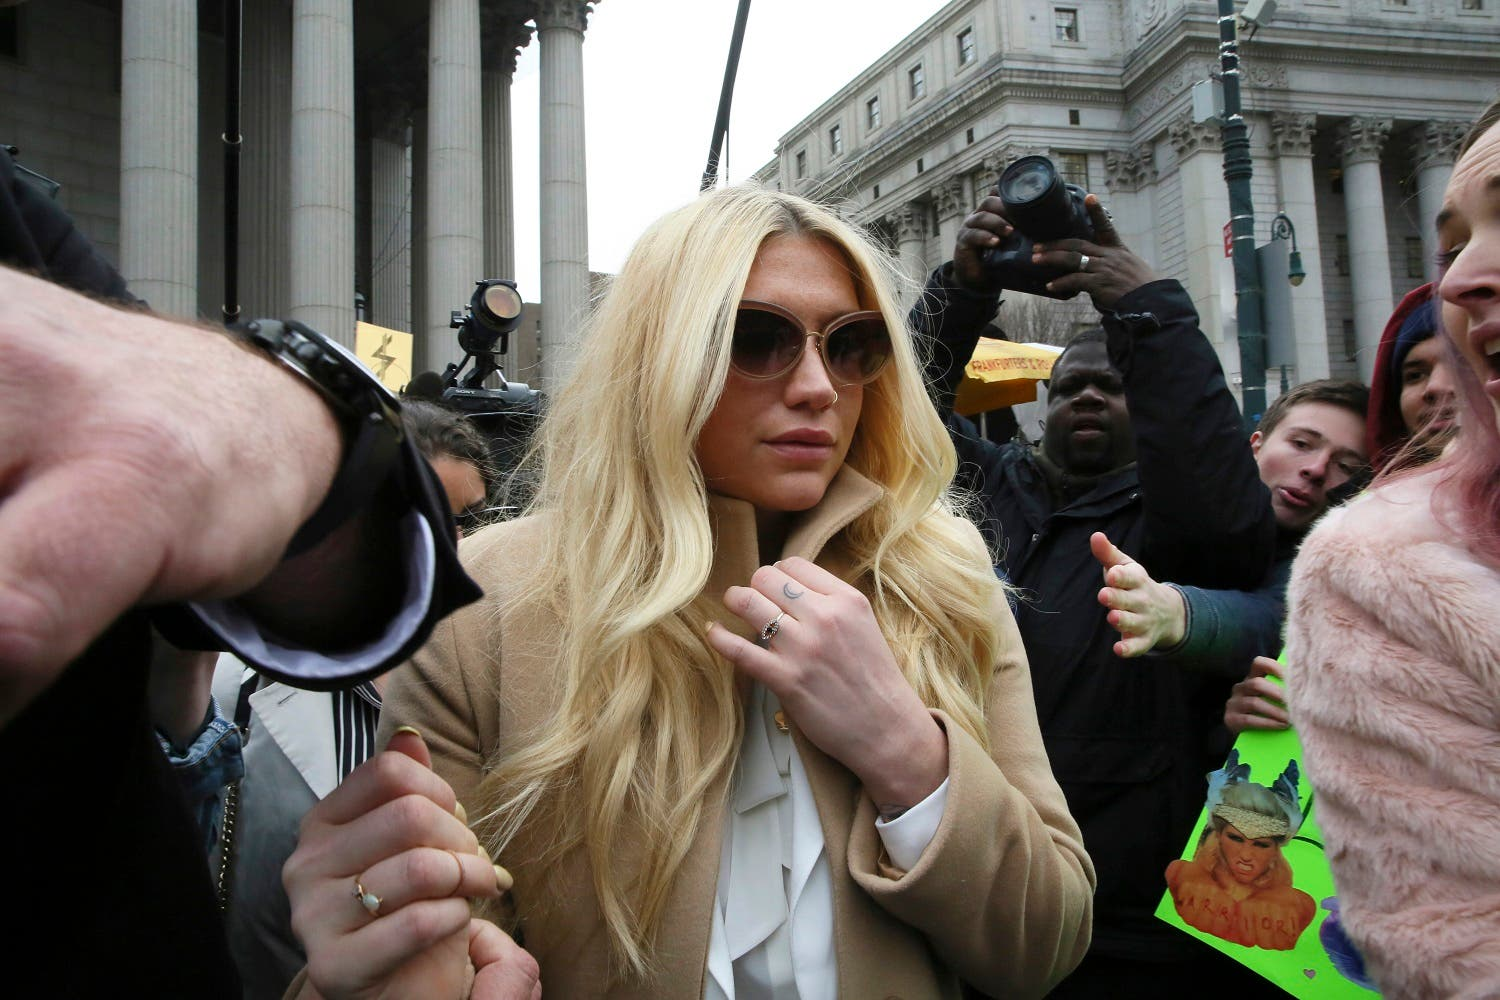 In this Feb. 19, 2016 file photo, pop star Kesha leaves Supreme court in New York after a hearing involving her producer, Dr. Luke. About 35 Kesha fans gathered outside Sony's Manhattan headquarters on Friday, March 11, to deliver petitions with more than 411,000 signatures demanding that the label release Kesha from her Sony recording contract and drop the producer, Dr. Luke, who she has accused of raping her. The hit-making producer, born Lukas Gottwald, is not charged with any crime. (AP)